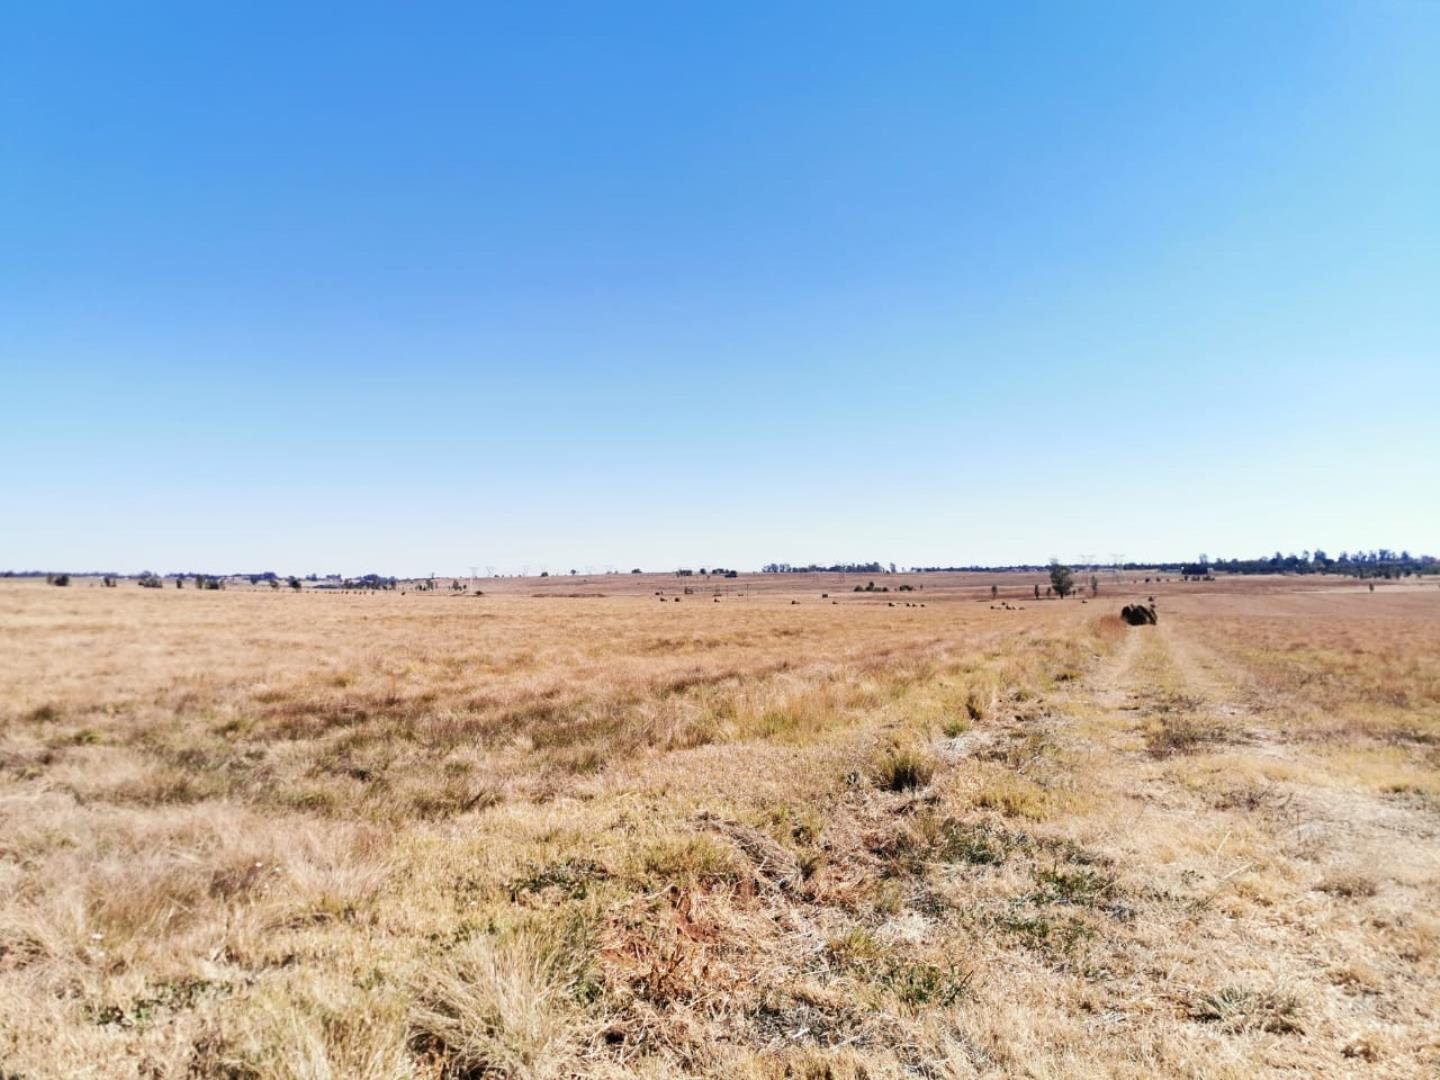 Vacant Land for Sale in Sterkfontein A H, Krugersdorp - Gauteng